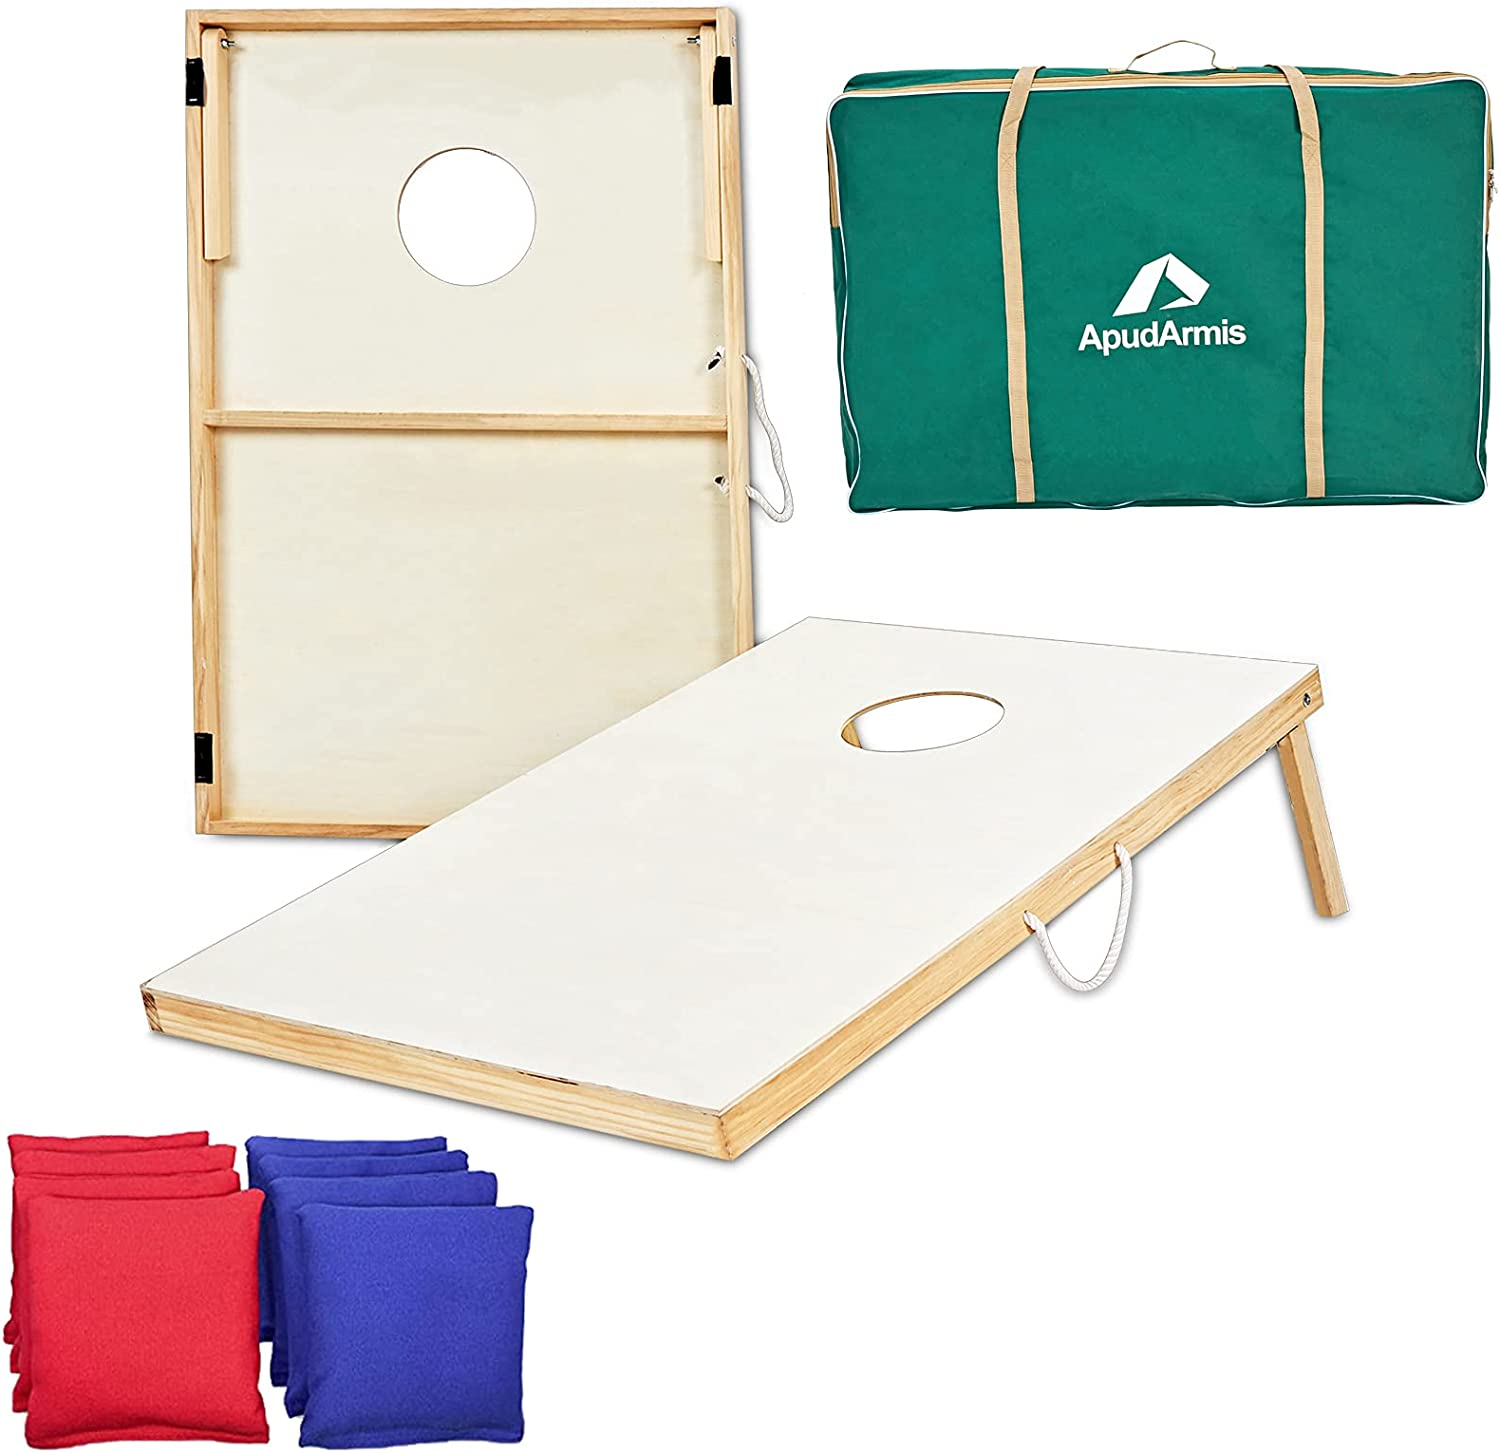 ApudArmis Wooden Cornhole Boards Set, 3x2Ft Classic Cornhole Outdoor Games Set with 8 Cornhole Bean Bags and Carrying Case - Tailgating BBQ's Camp Lawn Yard Beach Game for Kids Adults Family